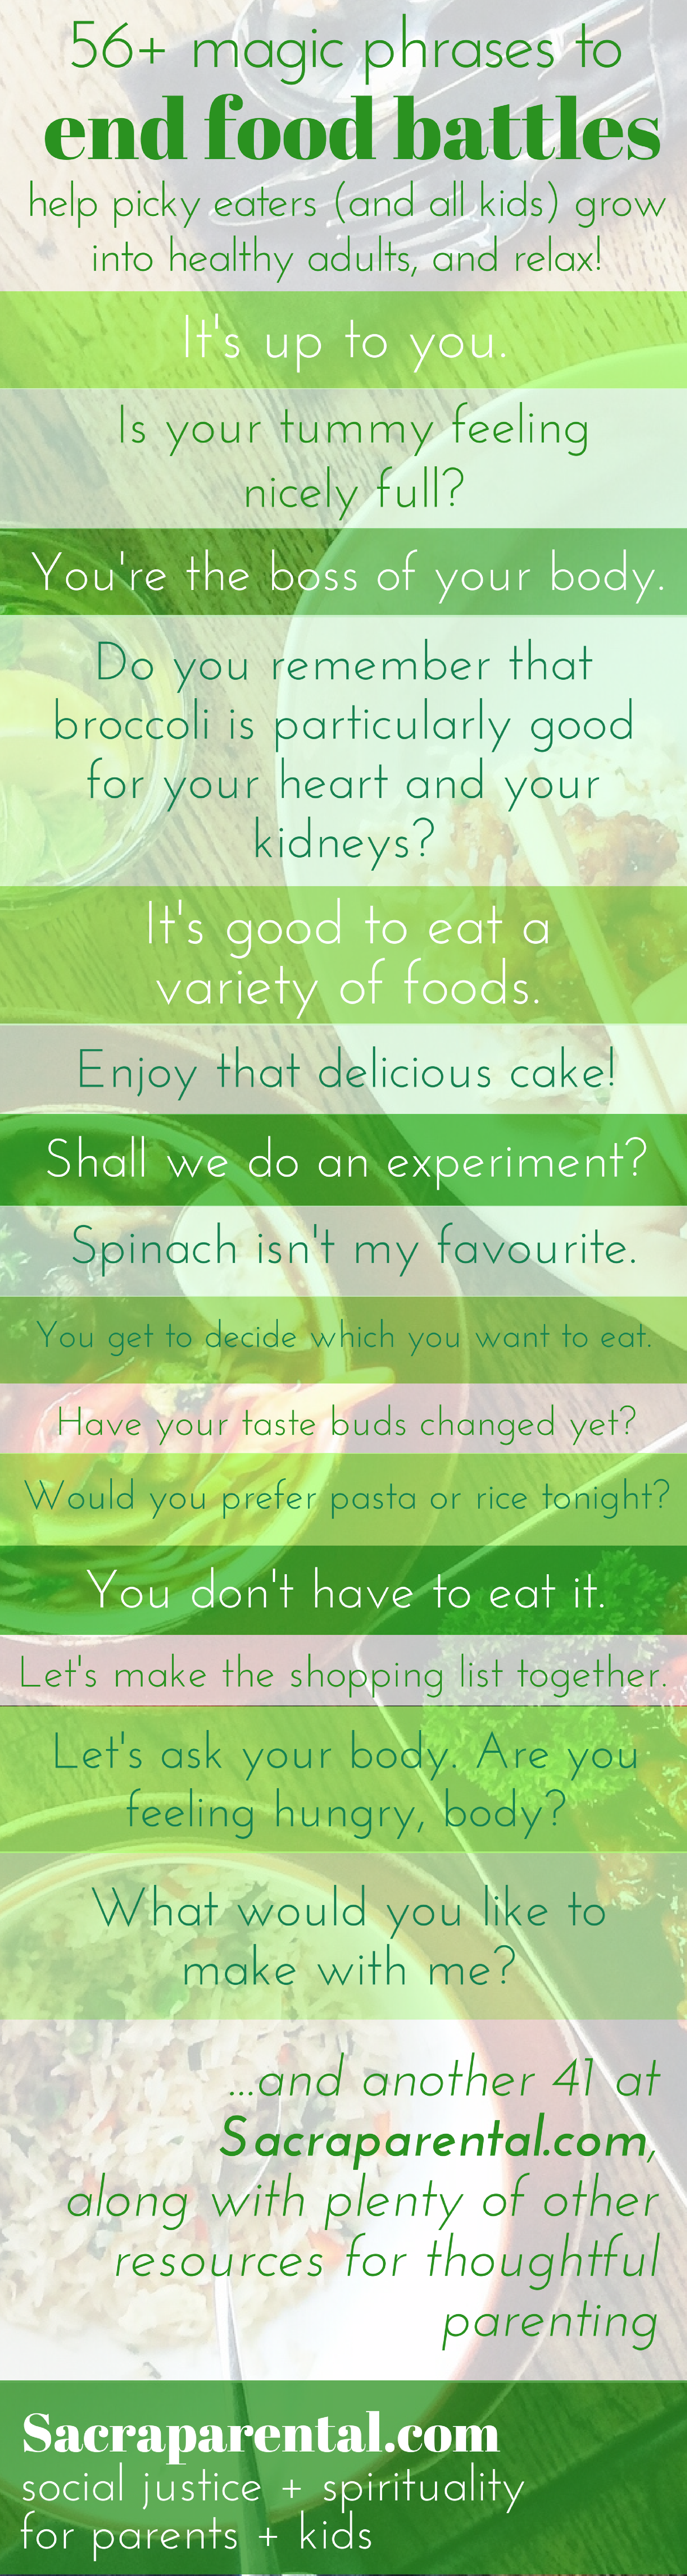 56+ magic phrases to end food battles with picky eaters